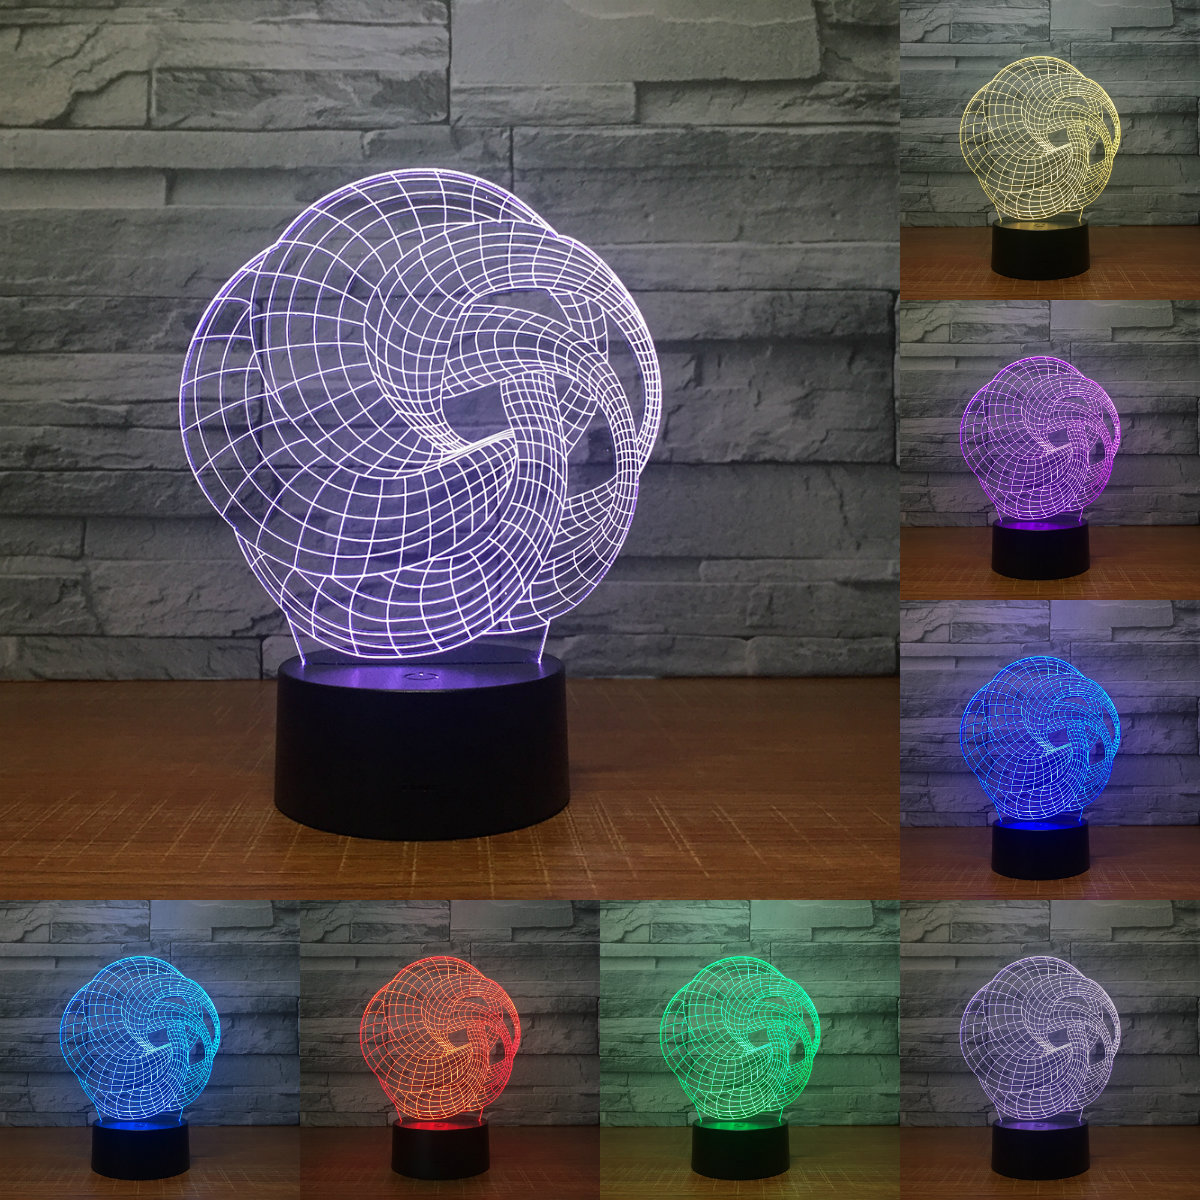 Creative 3D Illusion Lamp LED Night Light 3D Abstract Graphics Acrylic Lamparas Atmosphere Lamp Novelty Lighting IY803087